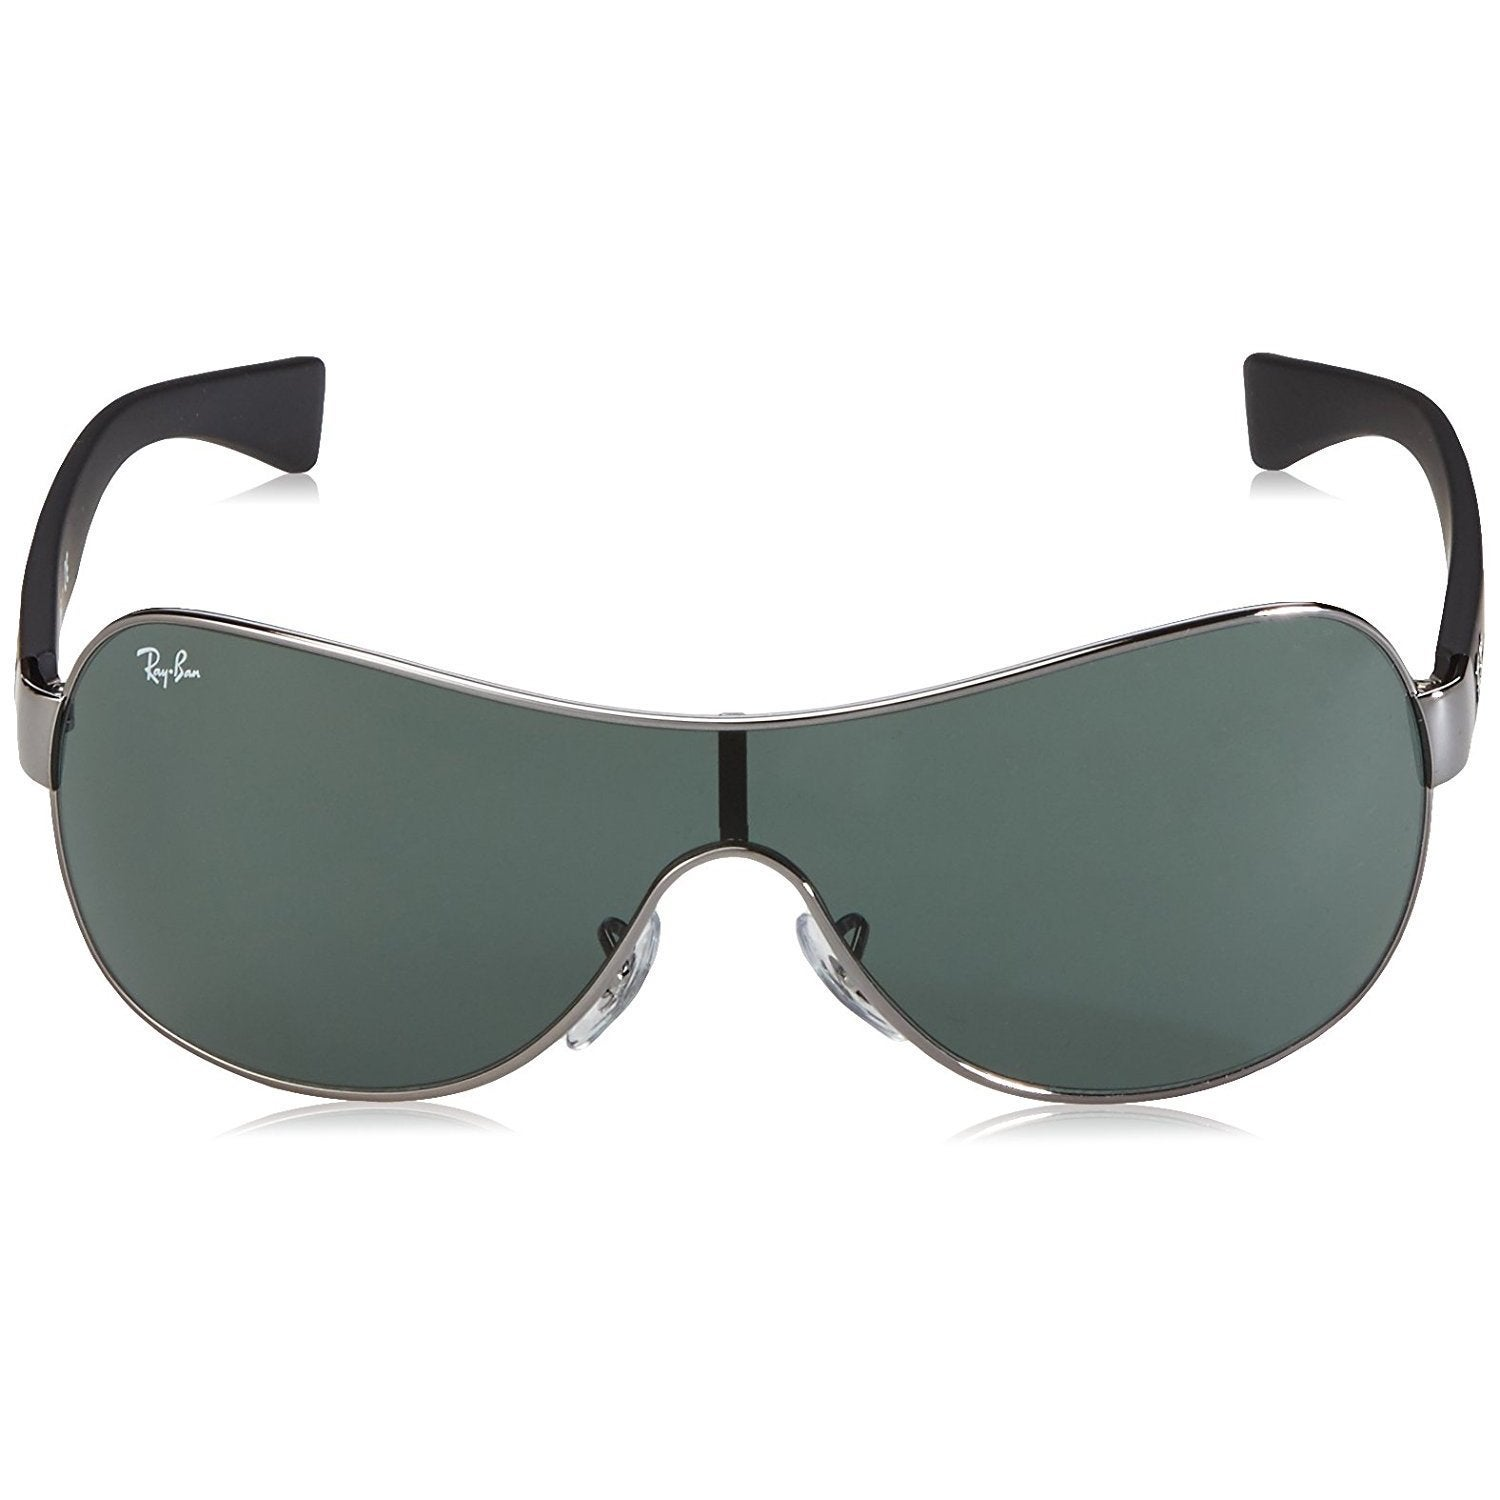 d4522b05cf Shop Ray-Ban RB3471 004 71 Gunmetal Black Frame Green Classic 32mm Lens  Sunglasses - Free Shipping Today - Overstock - 14328115